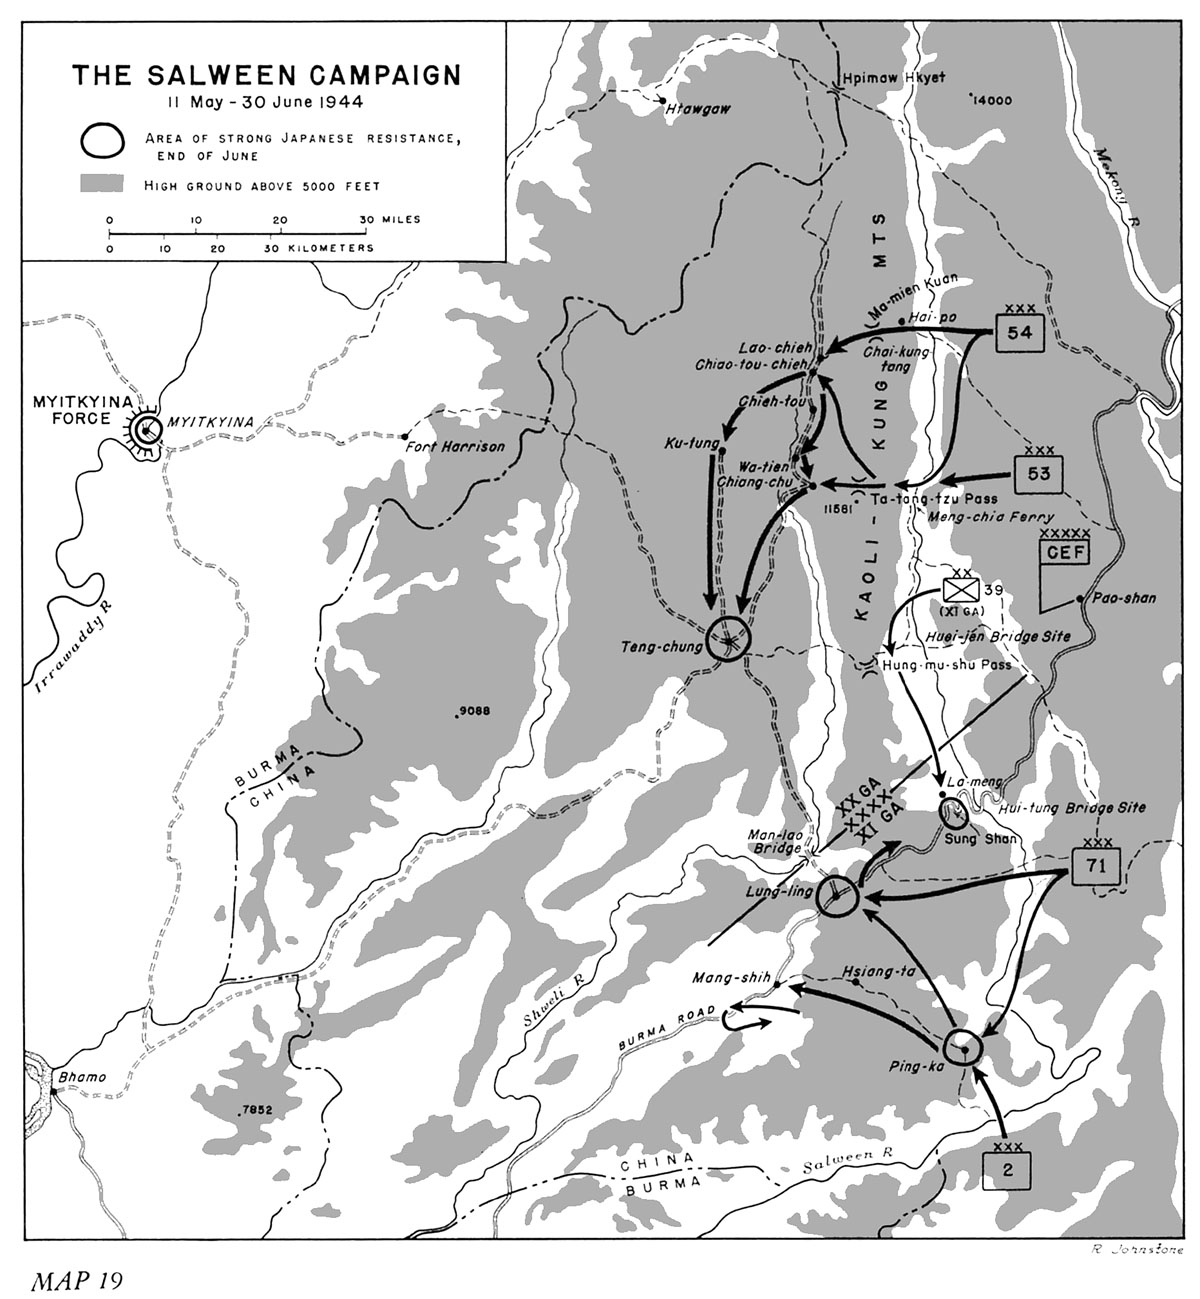 Hyperwar Us Army In Wwii Stillwells Command Problems Chapter 9 Cmd Concentrace Trace Mineral 4000 Drops Miles From Myitkyina On A Rough But Usable Trail Lung Ling Is The Old Burma Road Its Capture Would Split Japanese Positions Along Salween